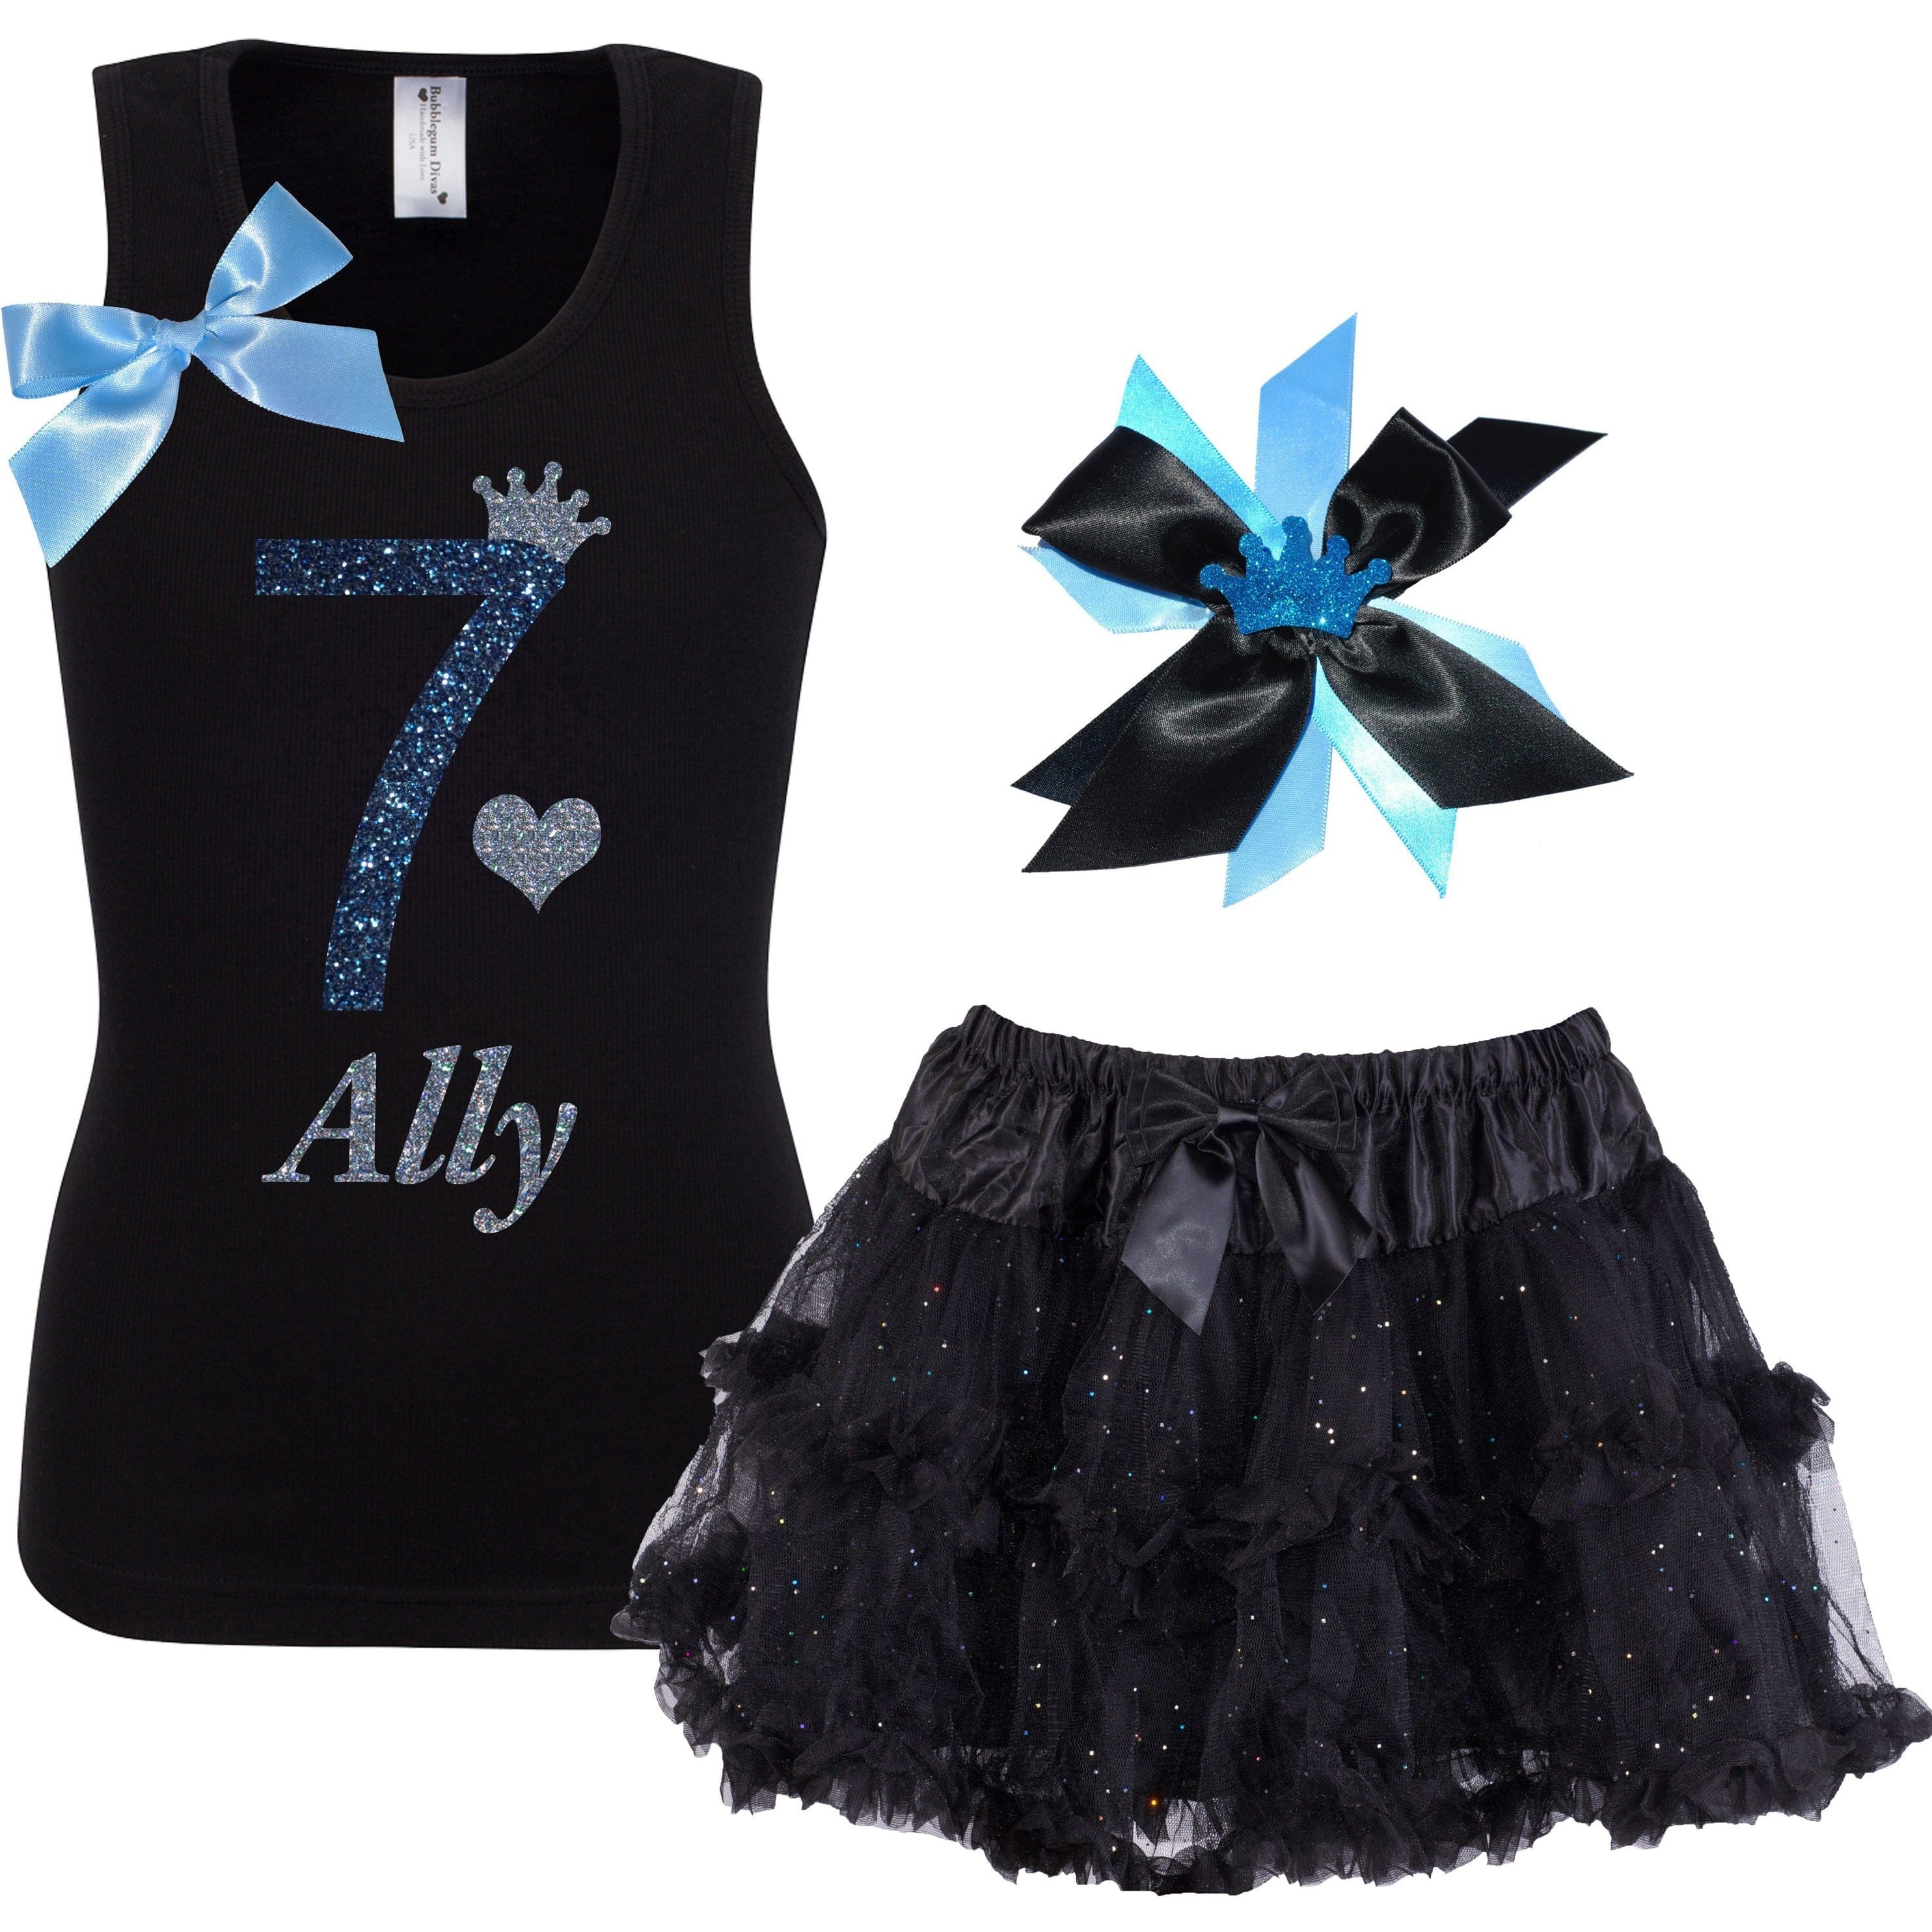 7th Birthday Shirt Black Tutu Skirt Girls Party Outfit - Outfit - Bubblegum Divas Store